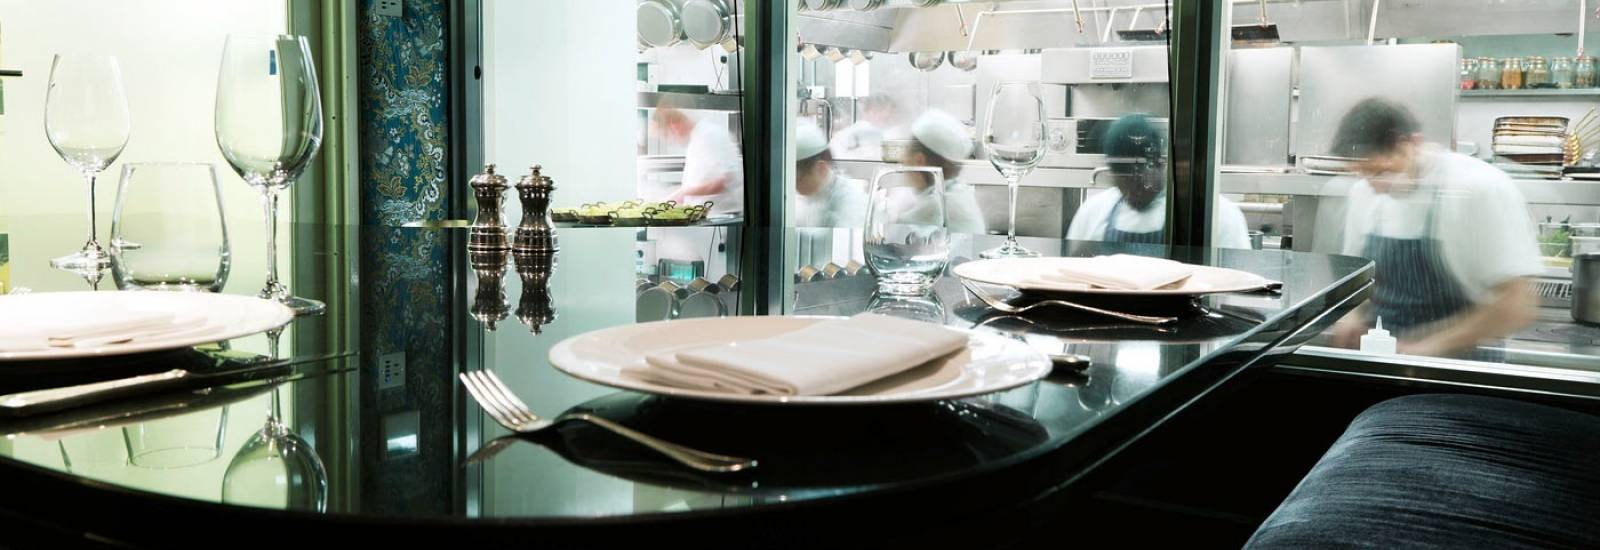 savoy grill chefs table